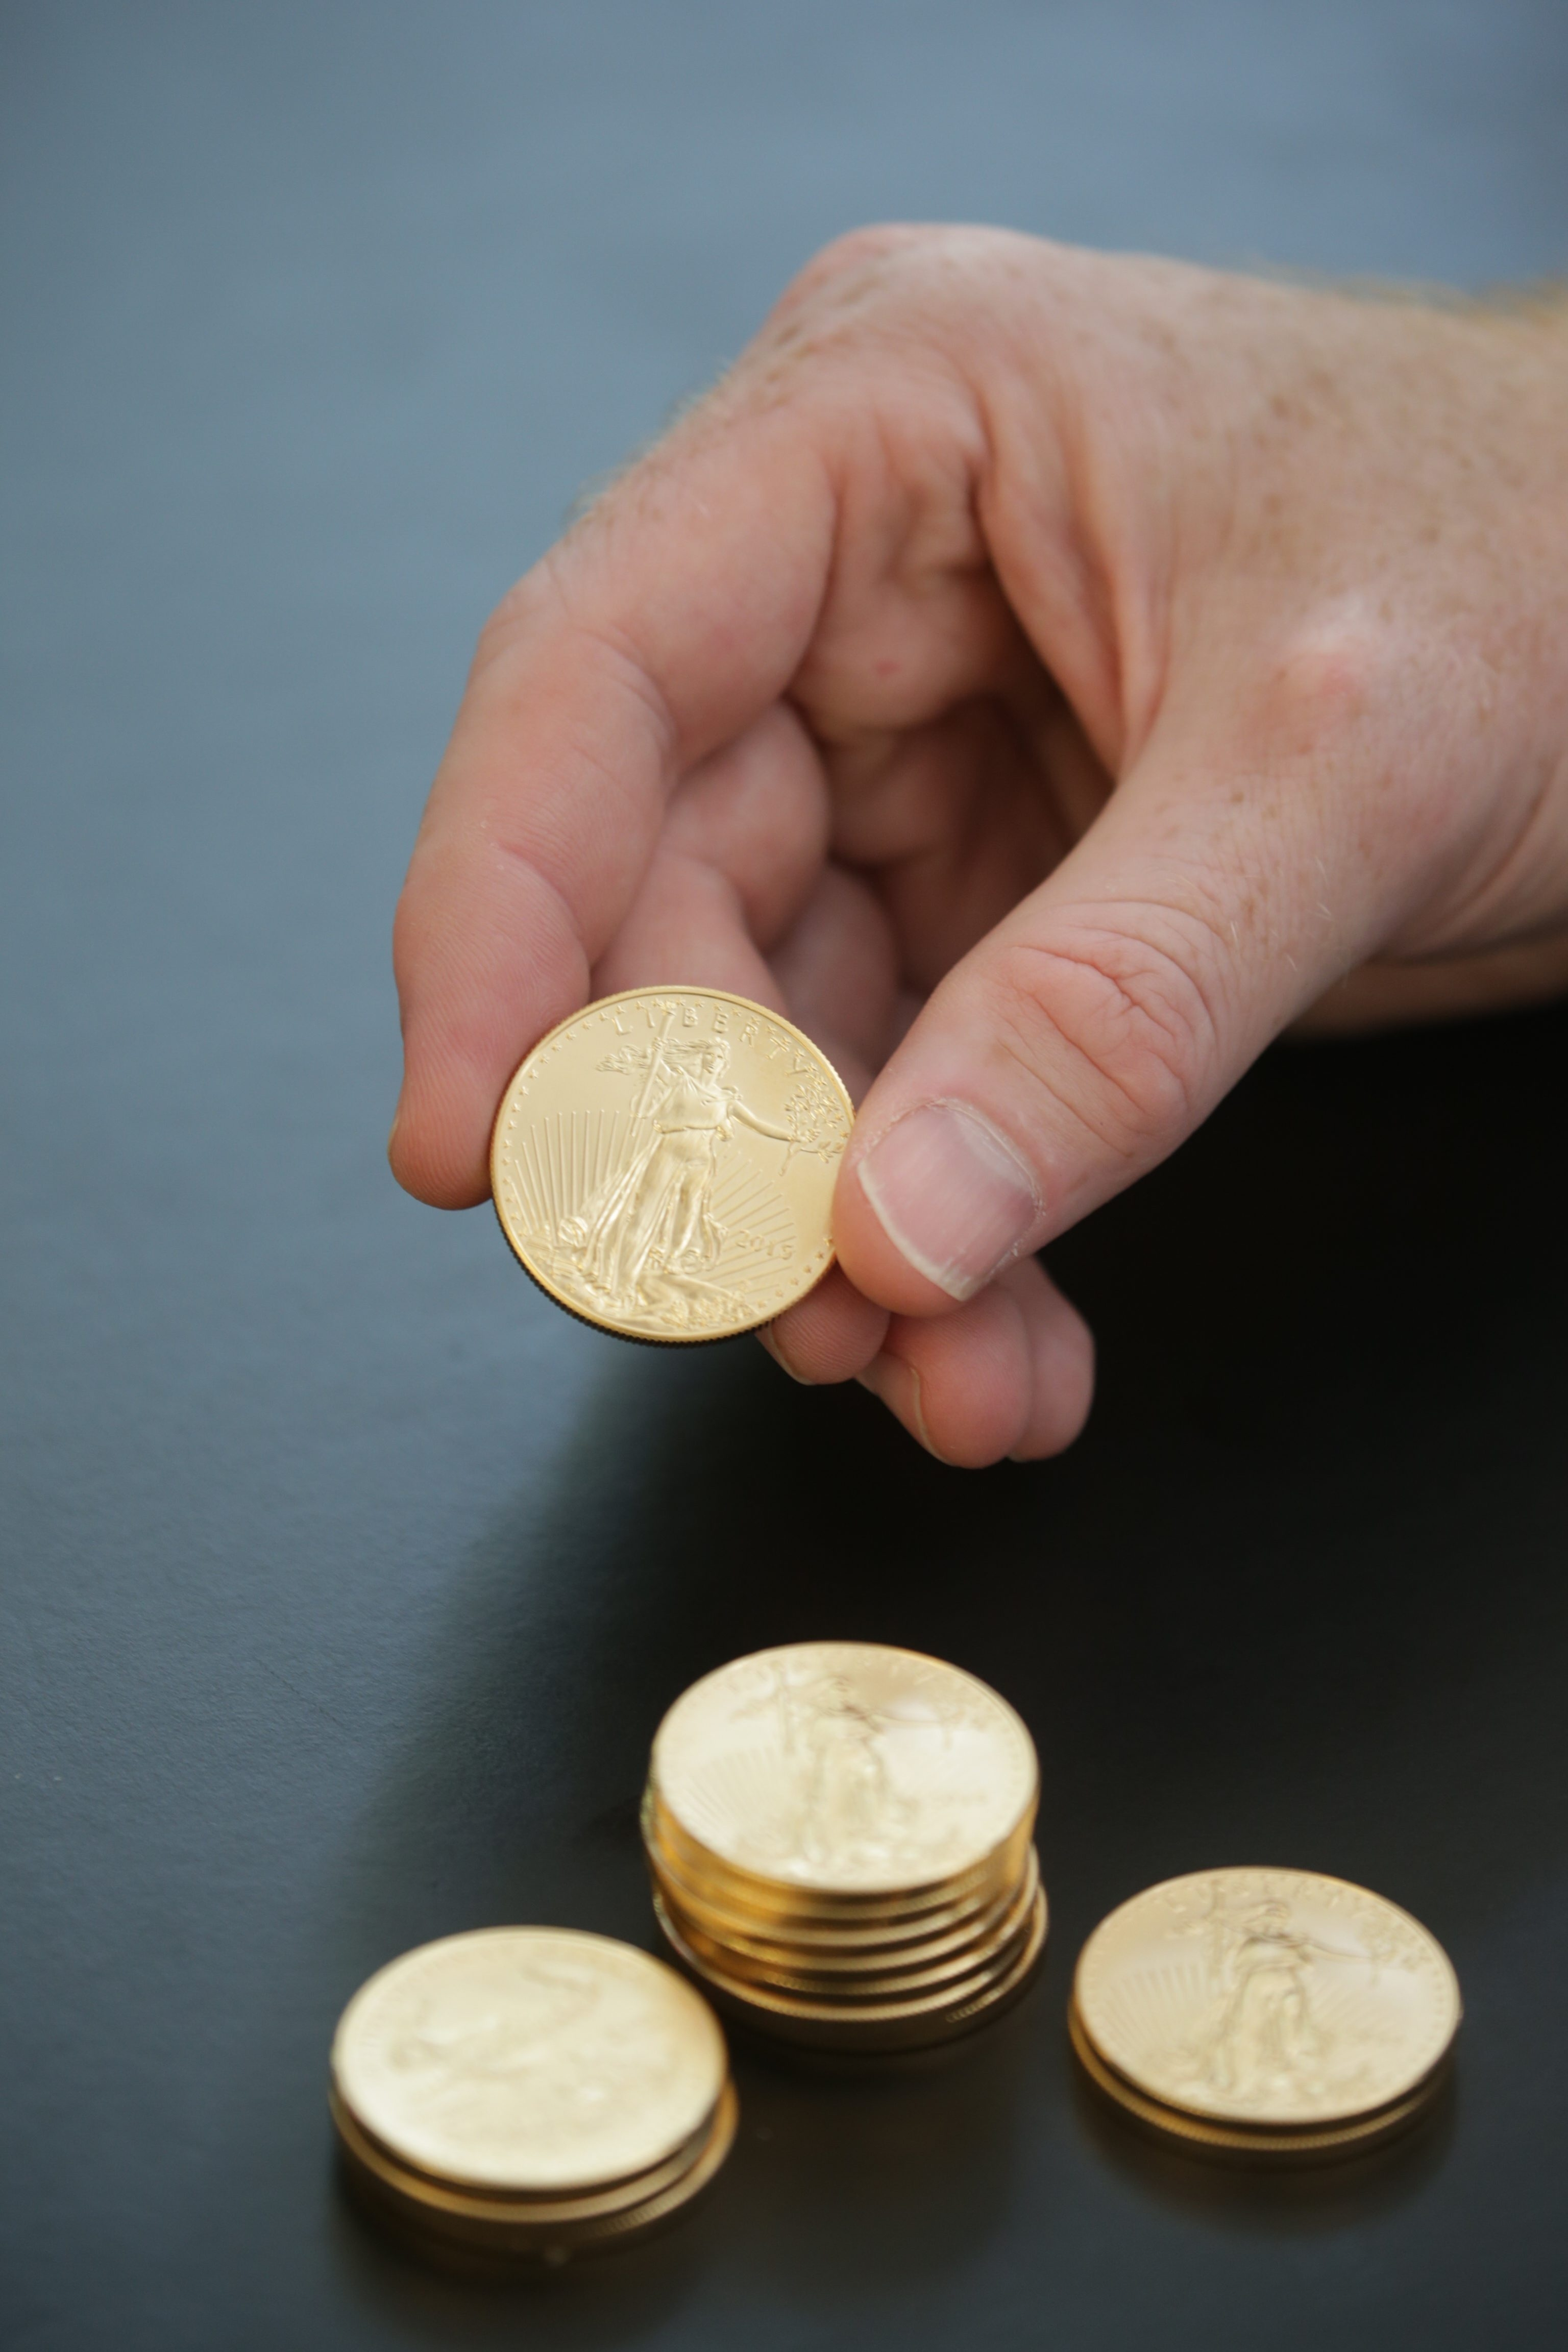 Scott Hunt at Jack Hunt Gold & Silver in Kenmore shows some American Eagle 2015 1-ounce gold coins. (John Hickey/Buffalo News)